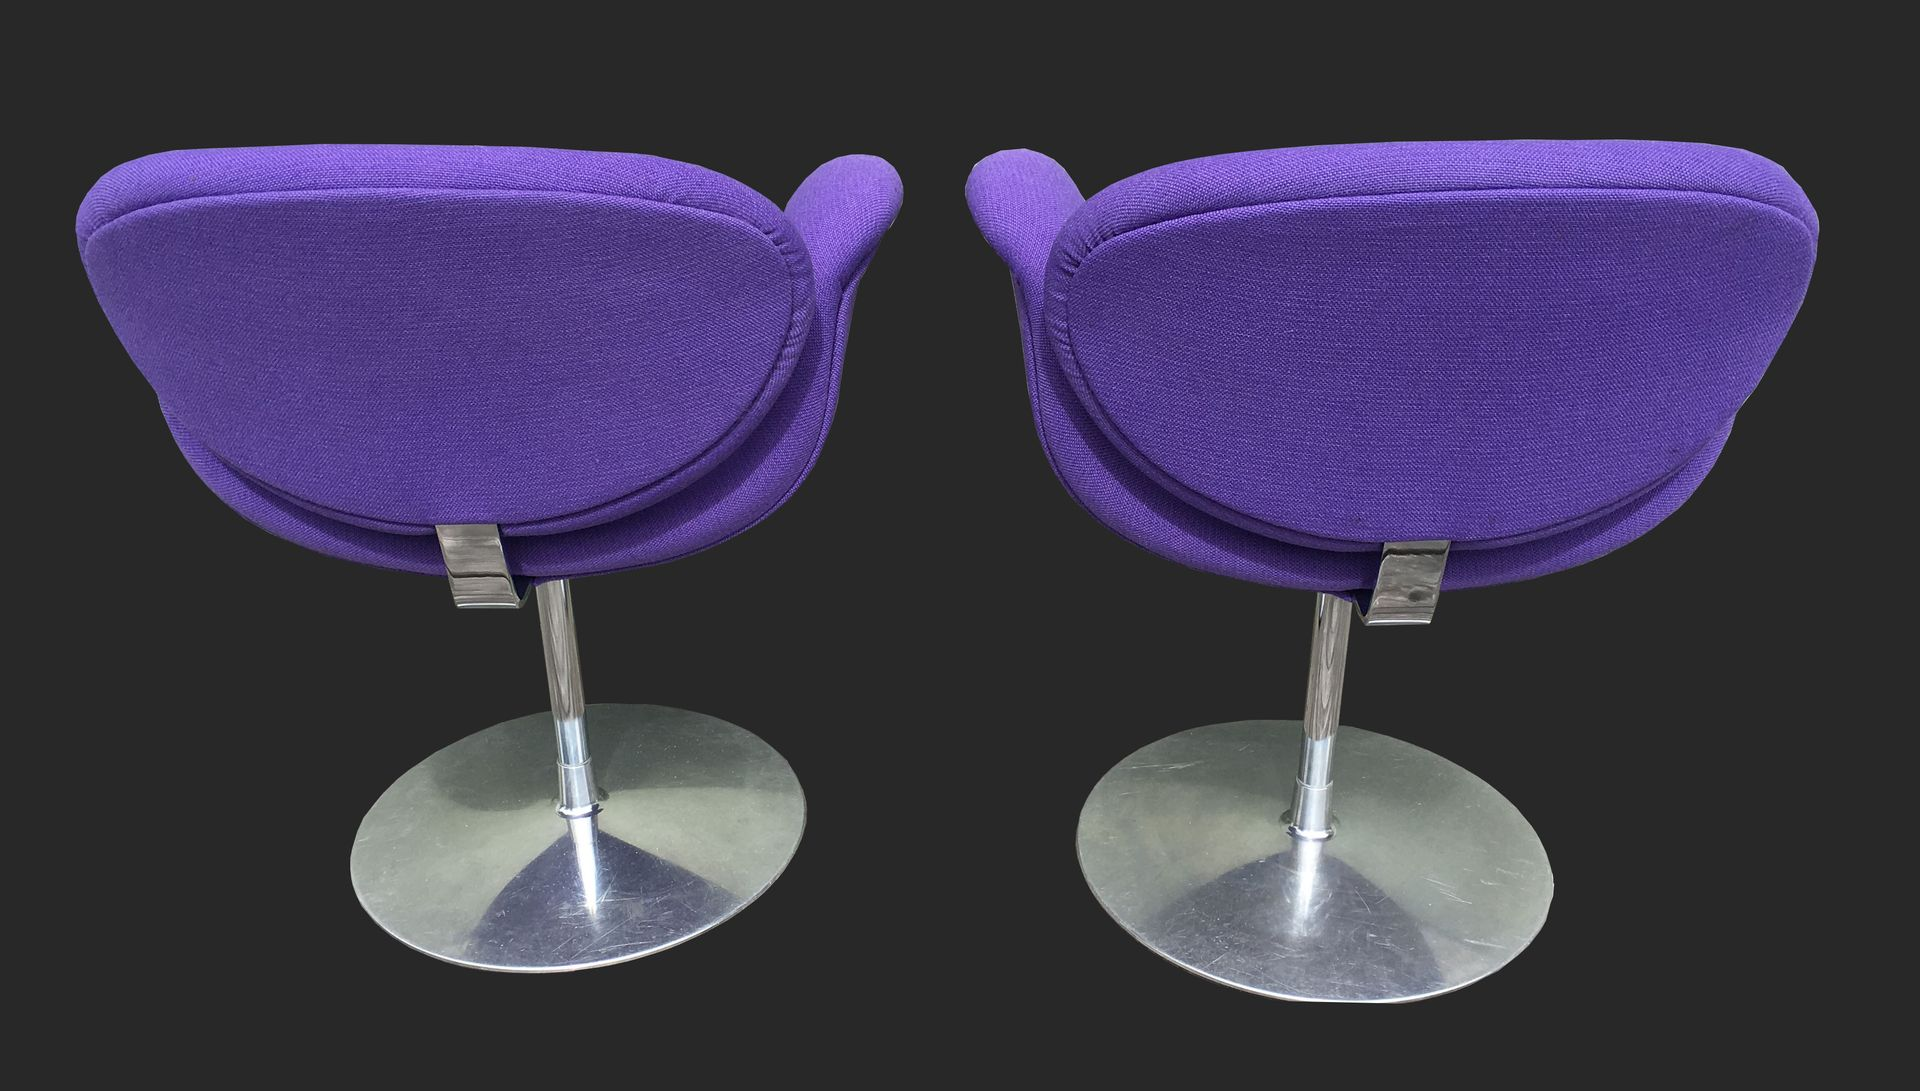 Small tulip chairs by pierre paulin for artifort 1970s set of 2 for sale at pamono - Tulip chairs for sale ...